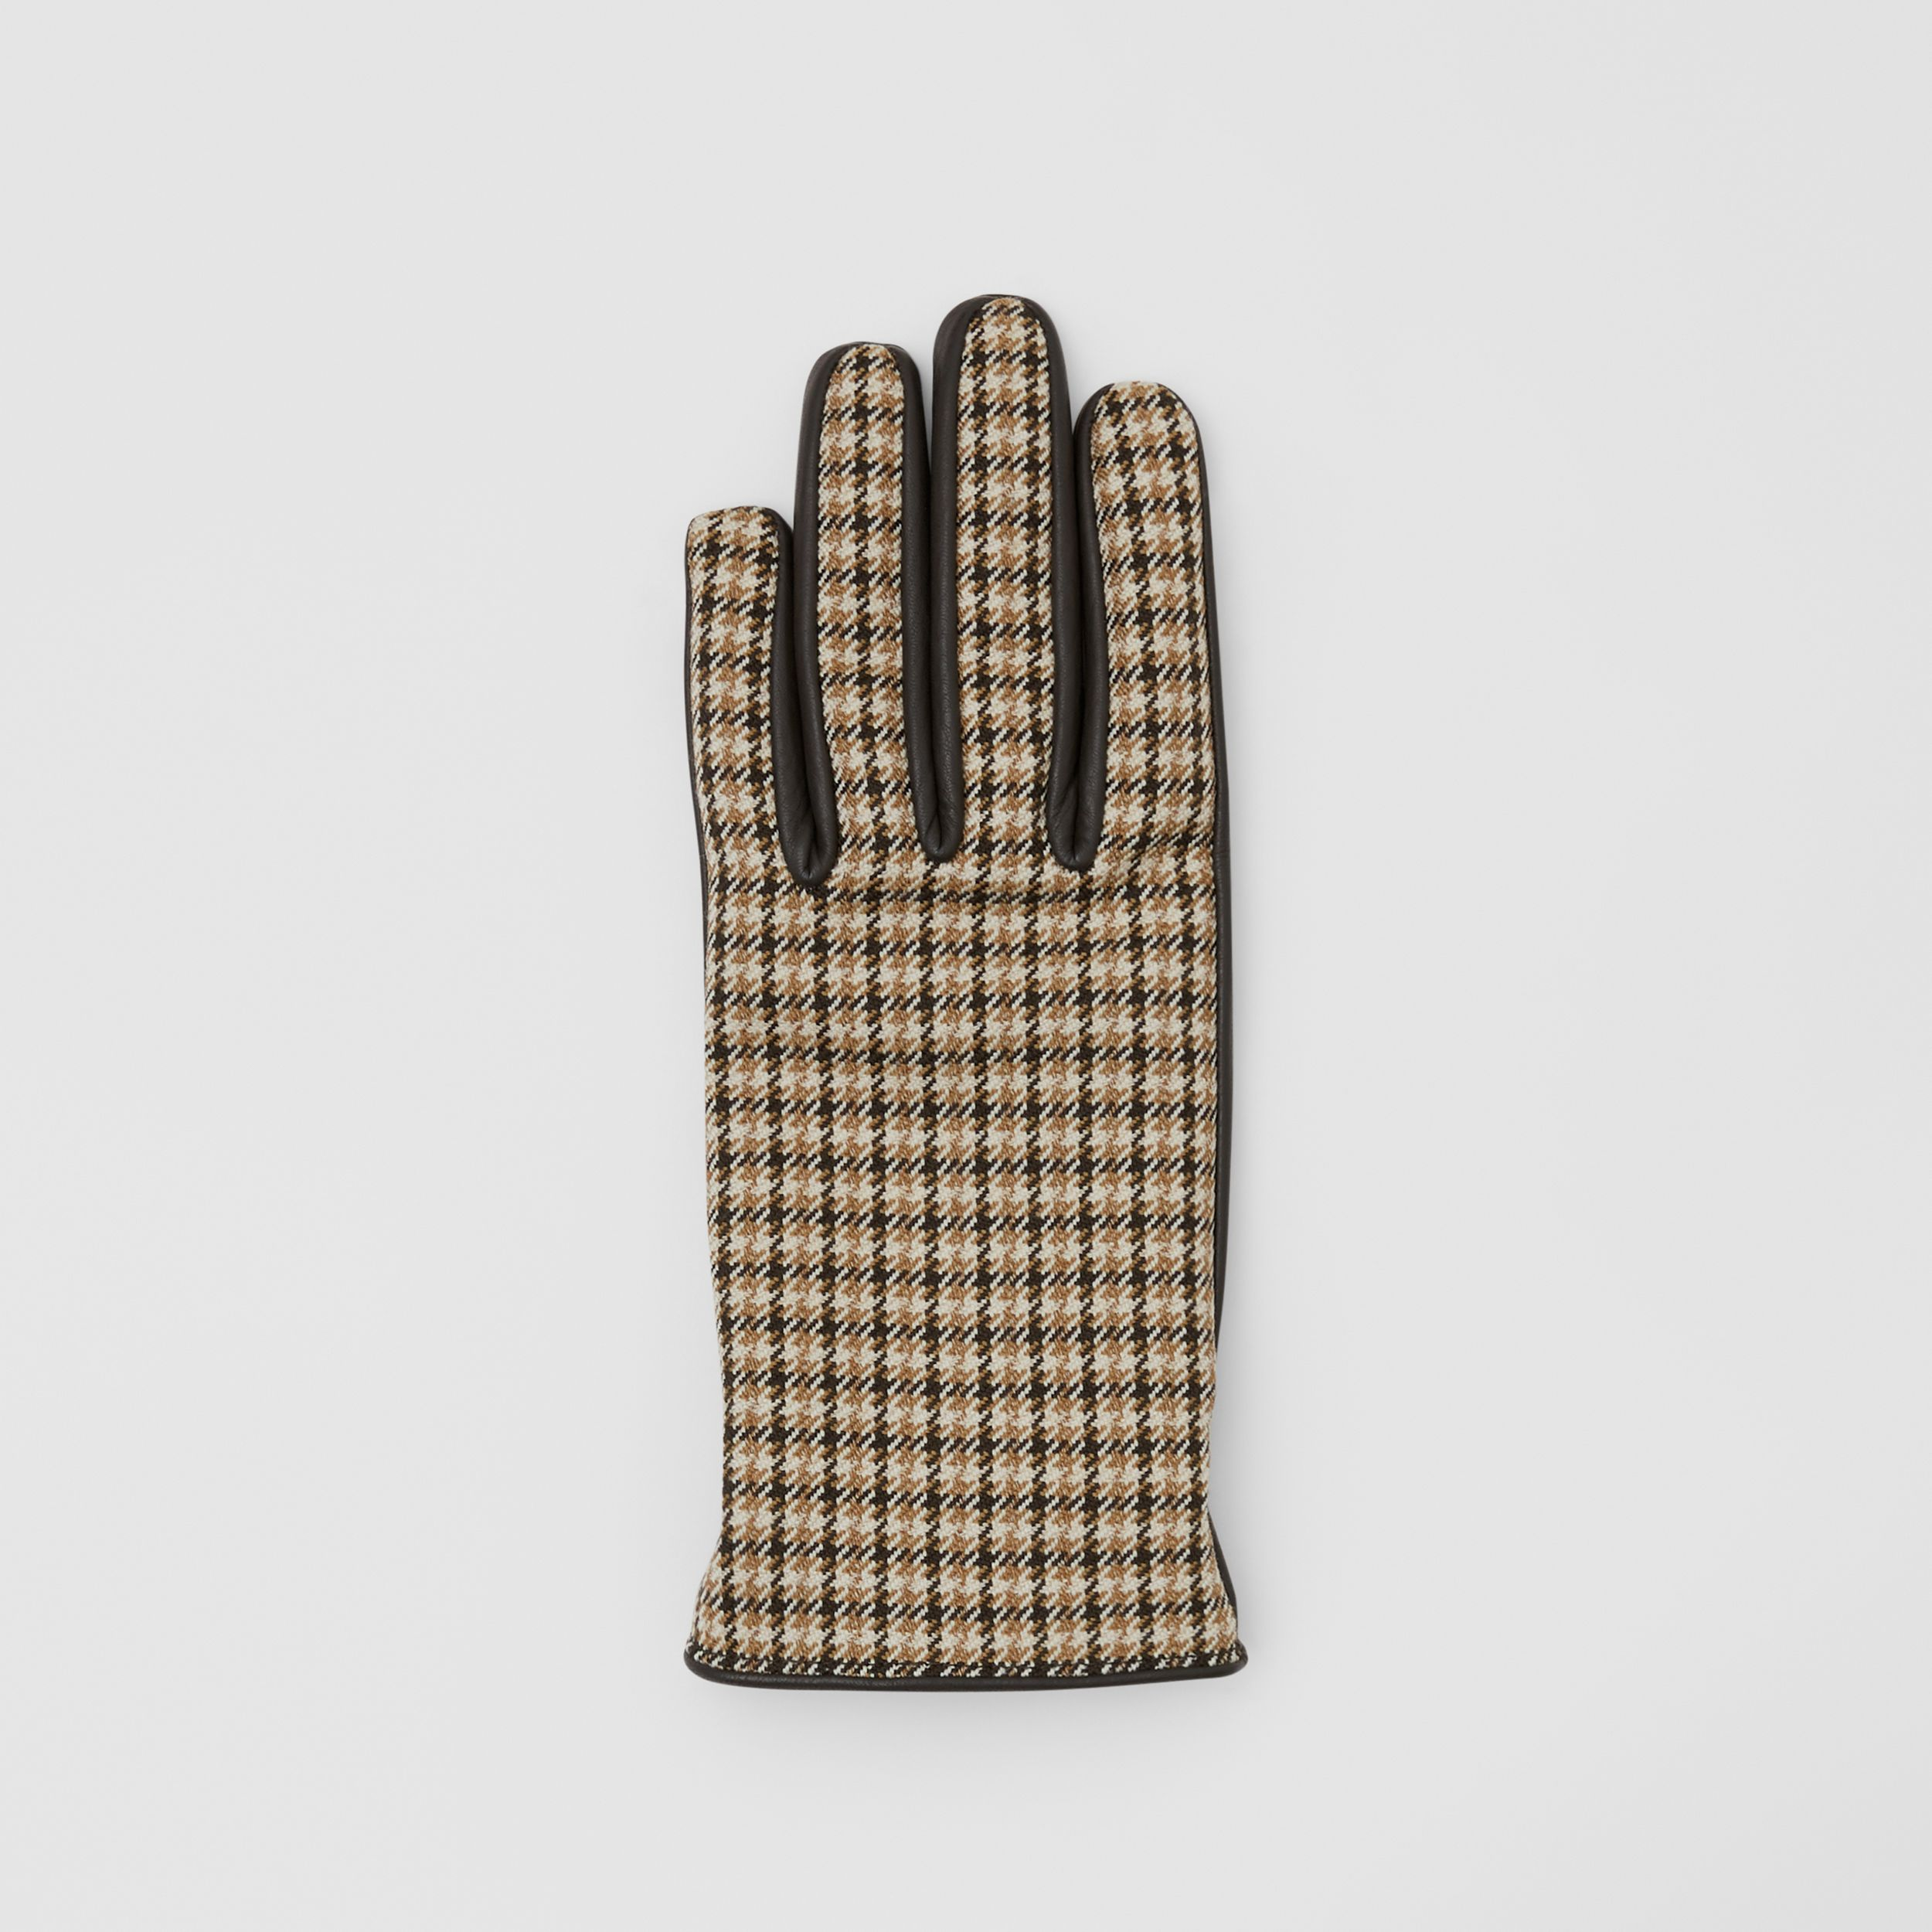 Cashmere-lined Lambskin and Check Wool Gloves in Brown | Burberry - 4